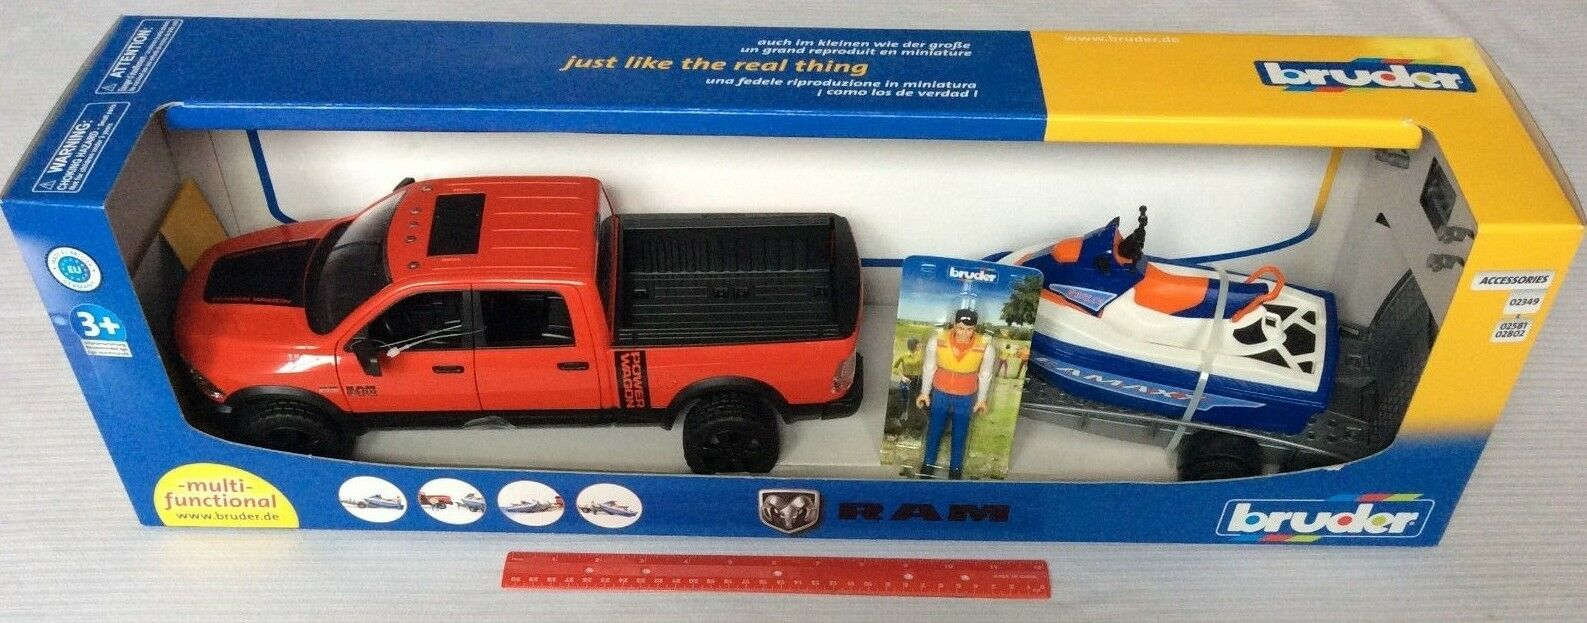 Bruder Toys RAM 2500 Power Wagon w  Trailer Personal Water Craft & Driver 02503